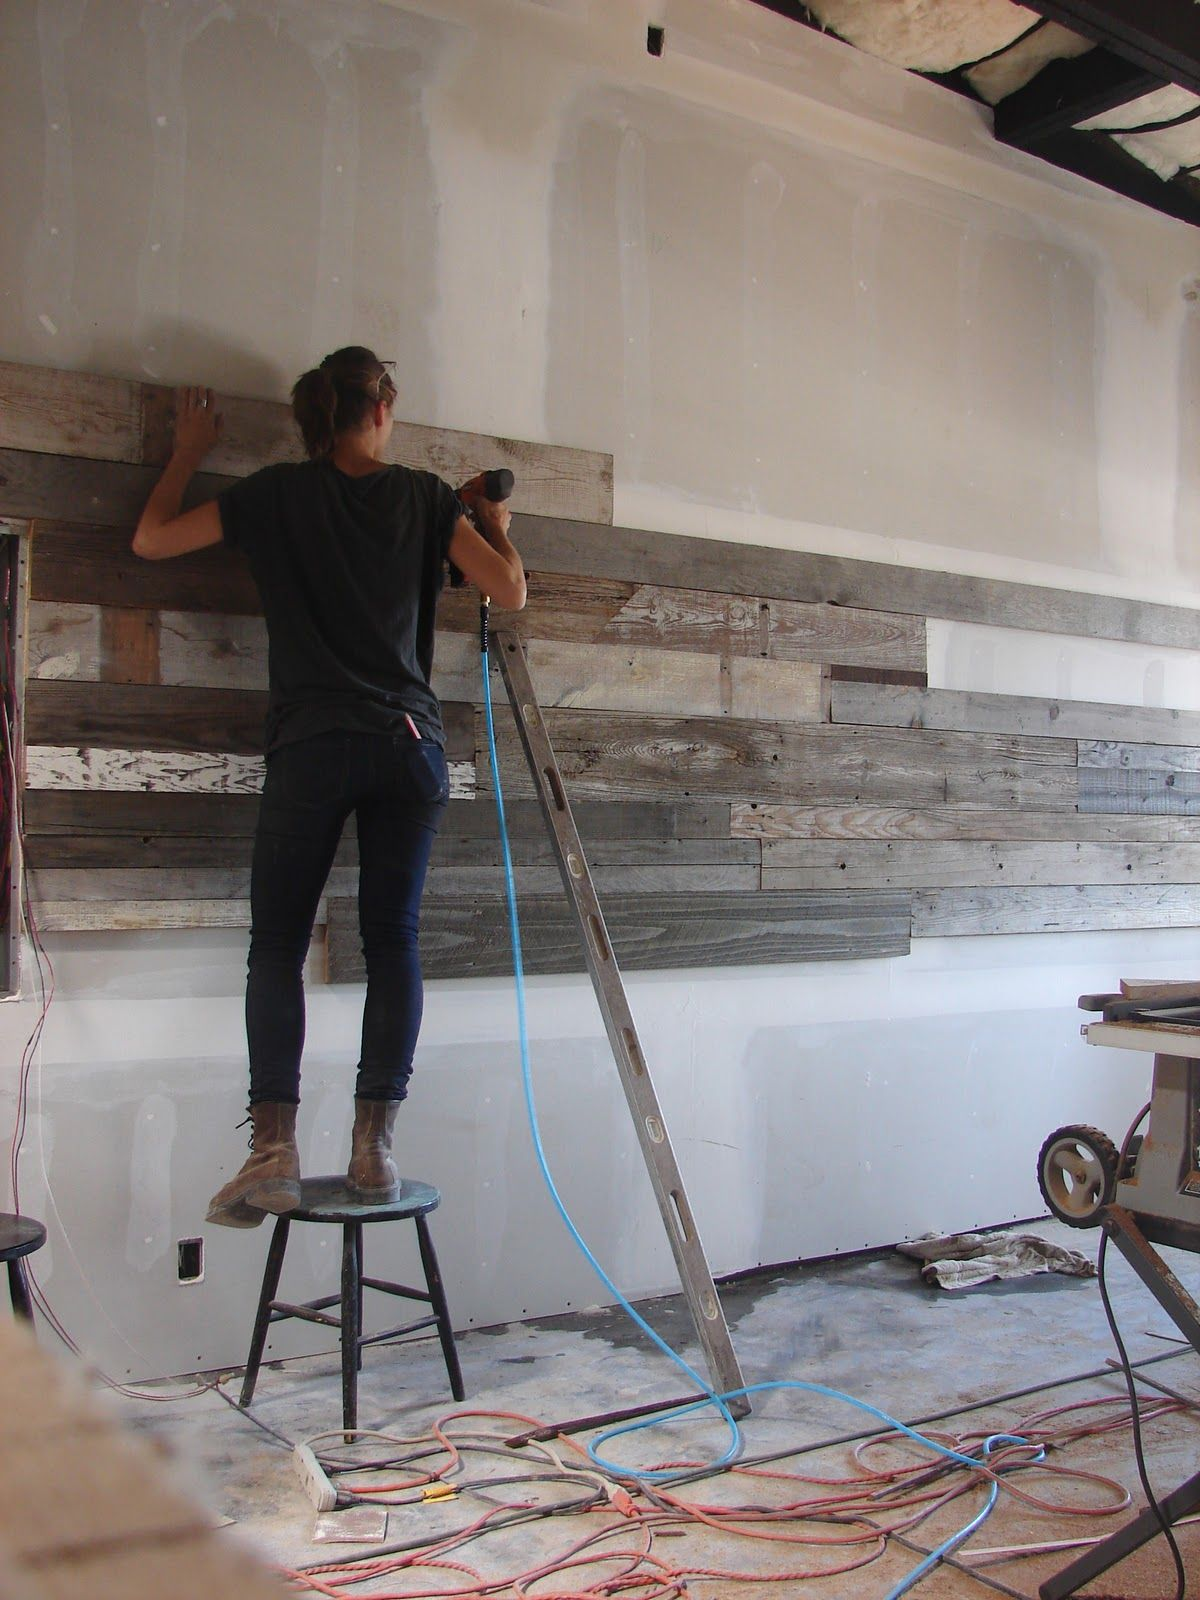 Ariele Alasko Constructing A Wall For A Restaurant She Traveled